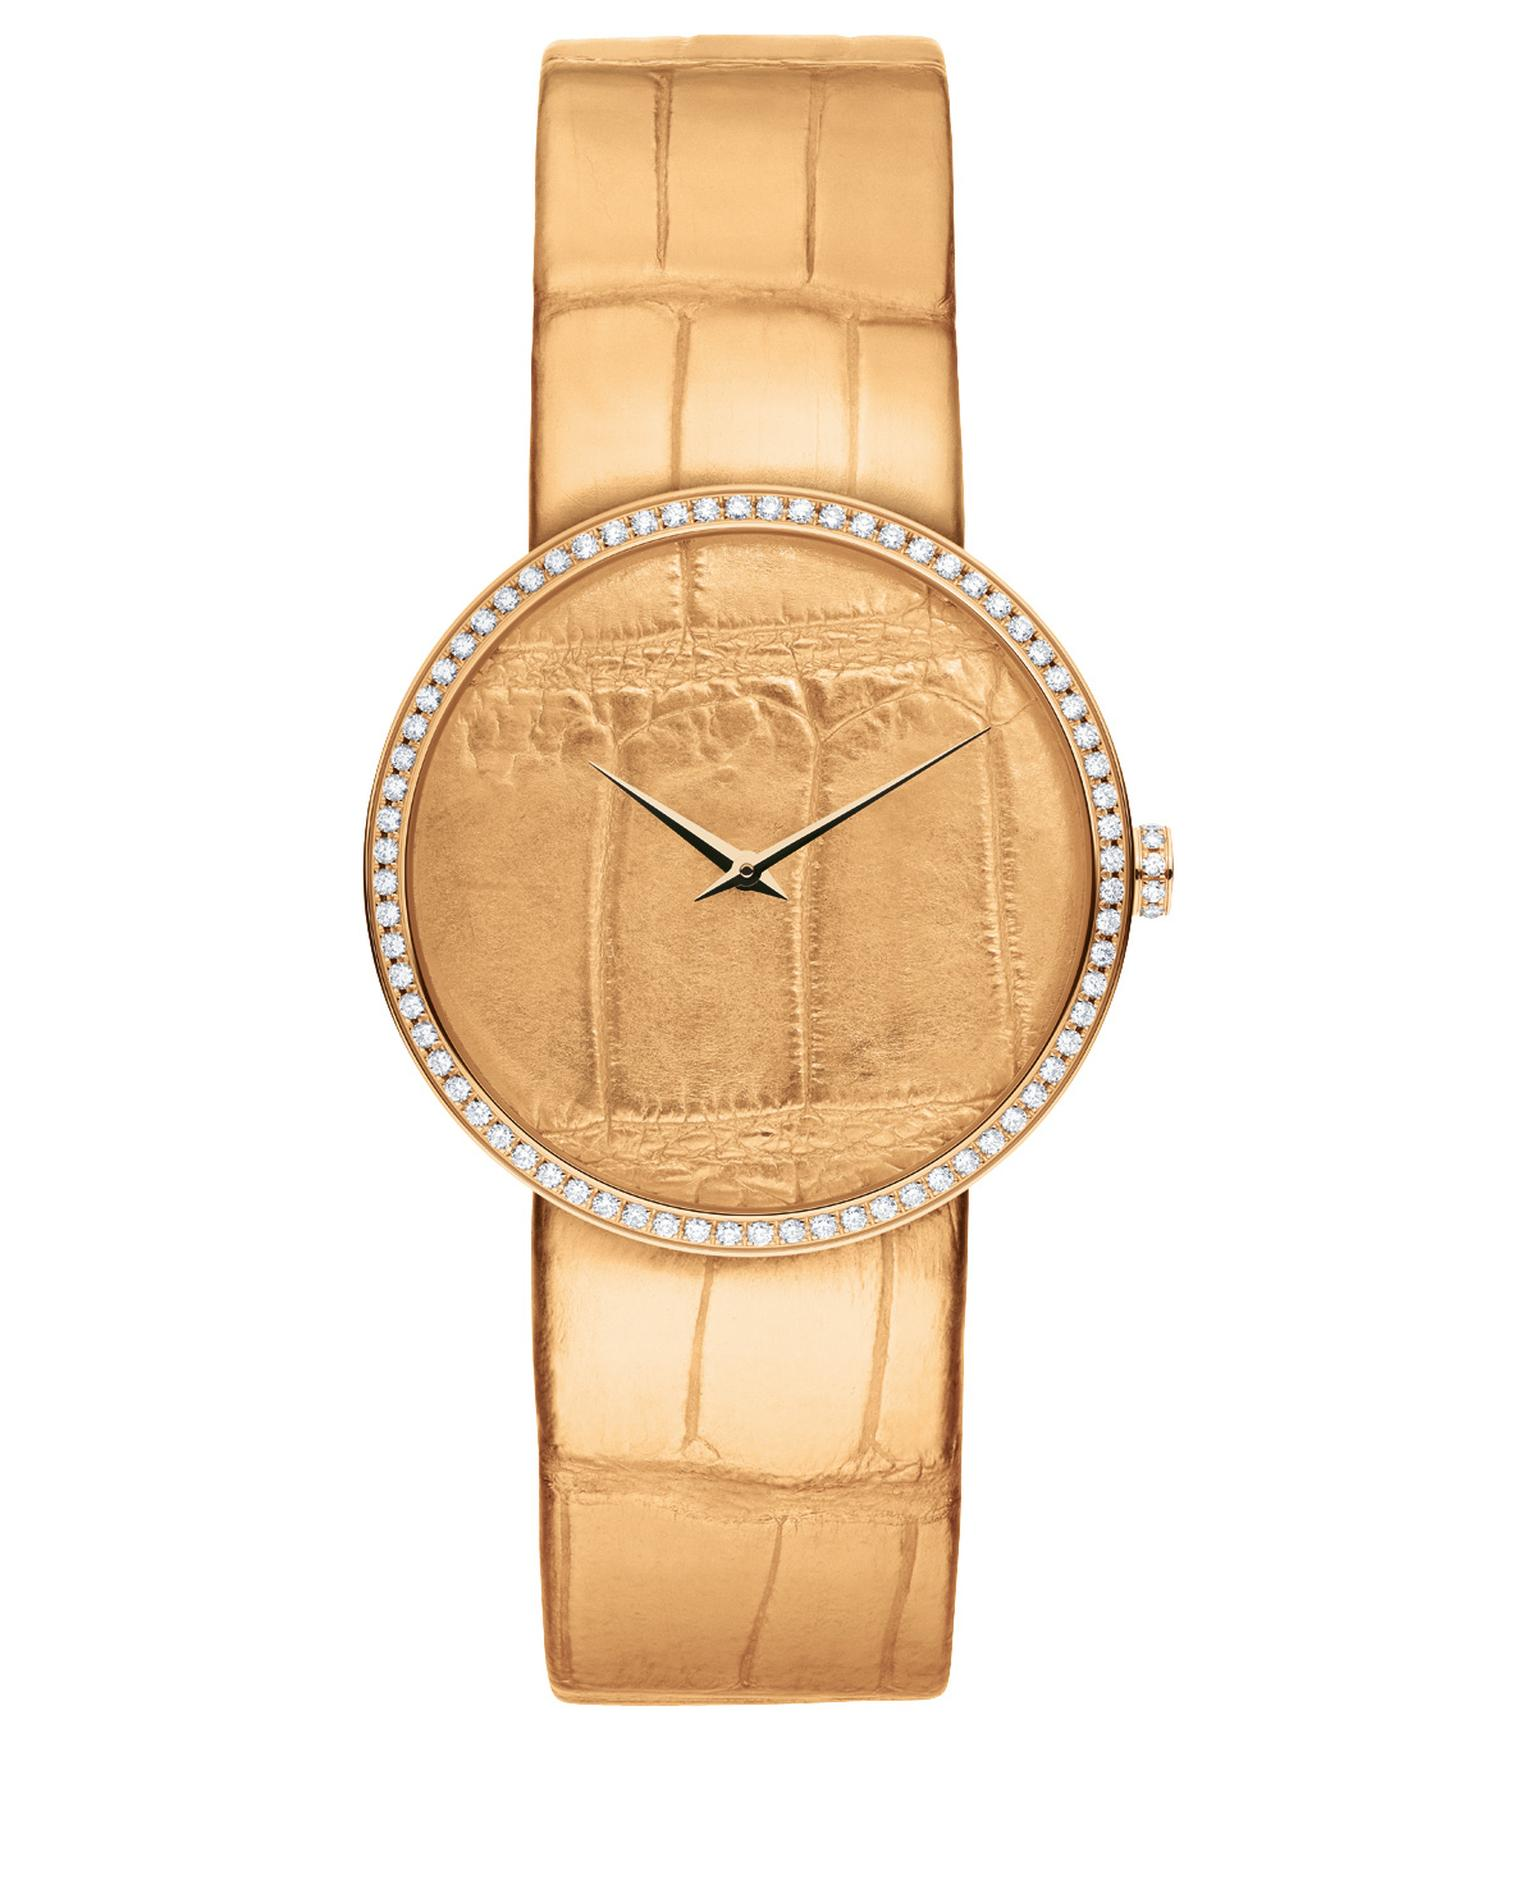 La-D-de-Dior-Alligator-watch-in-pink-gold-and-diamonds_20140512_Zoom